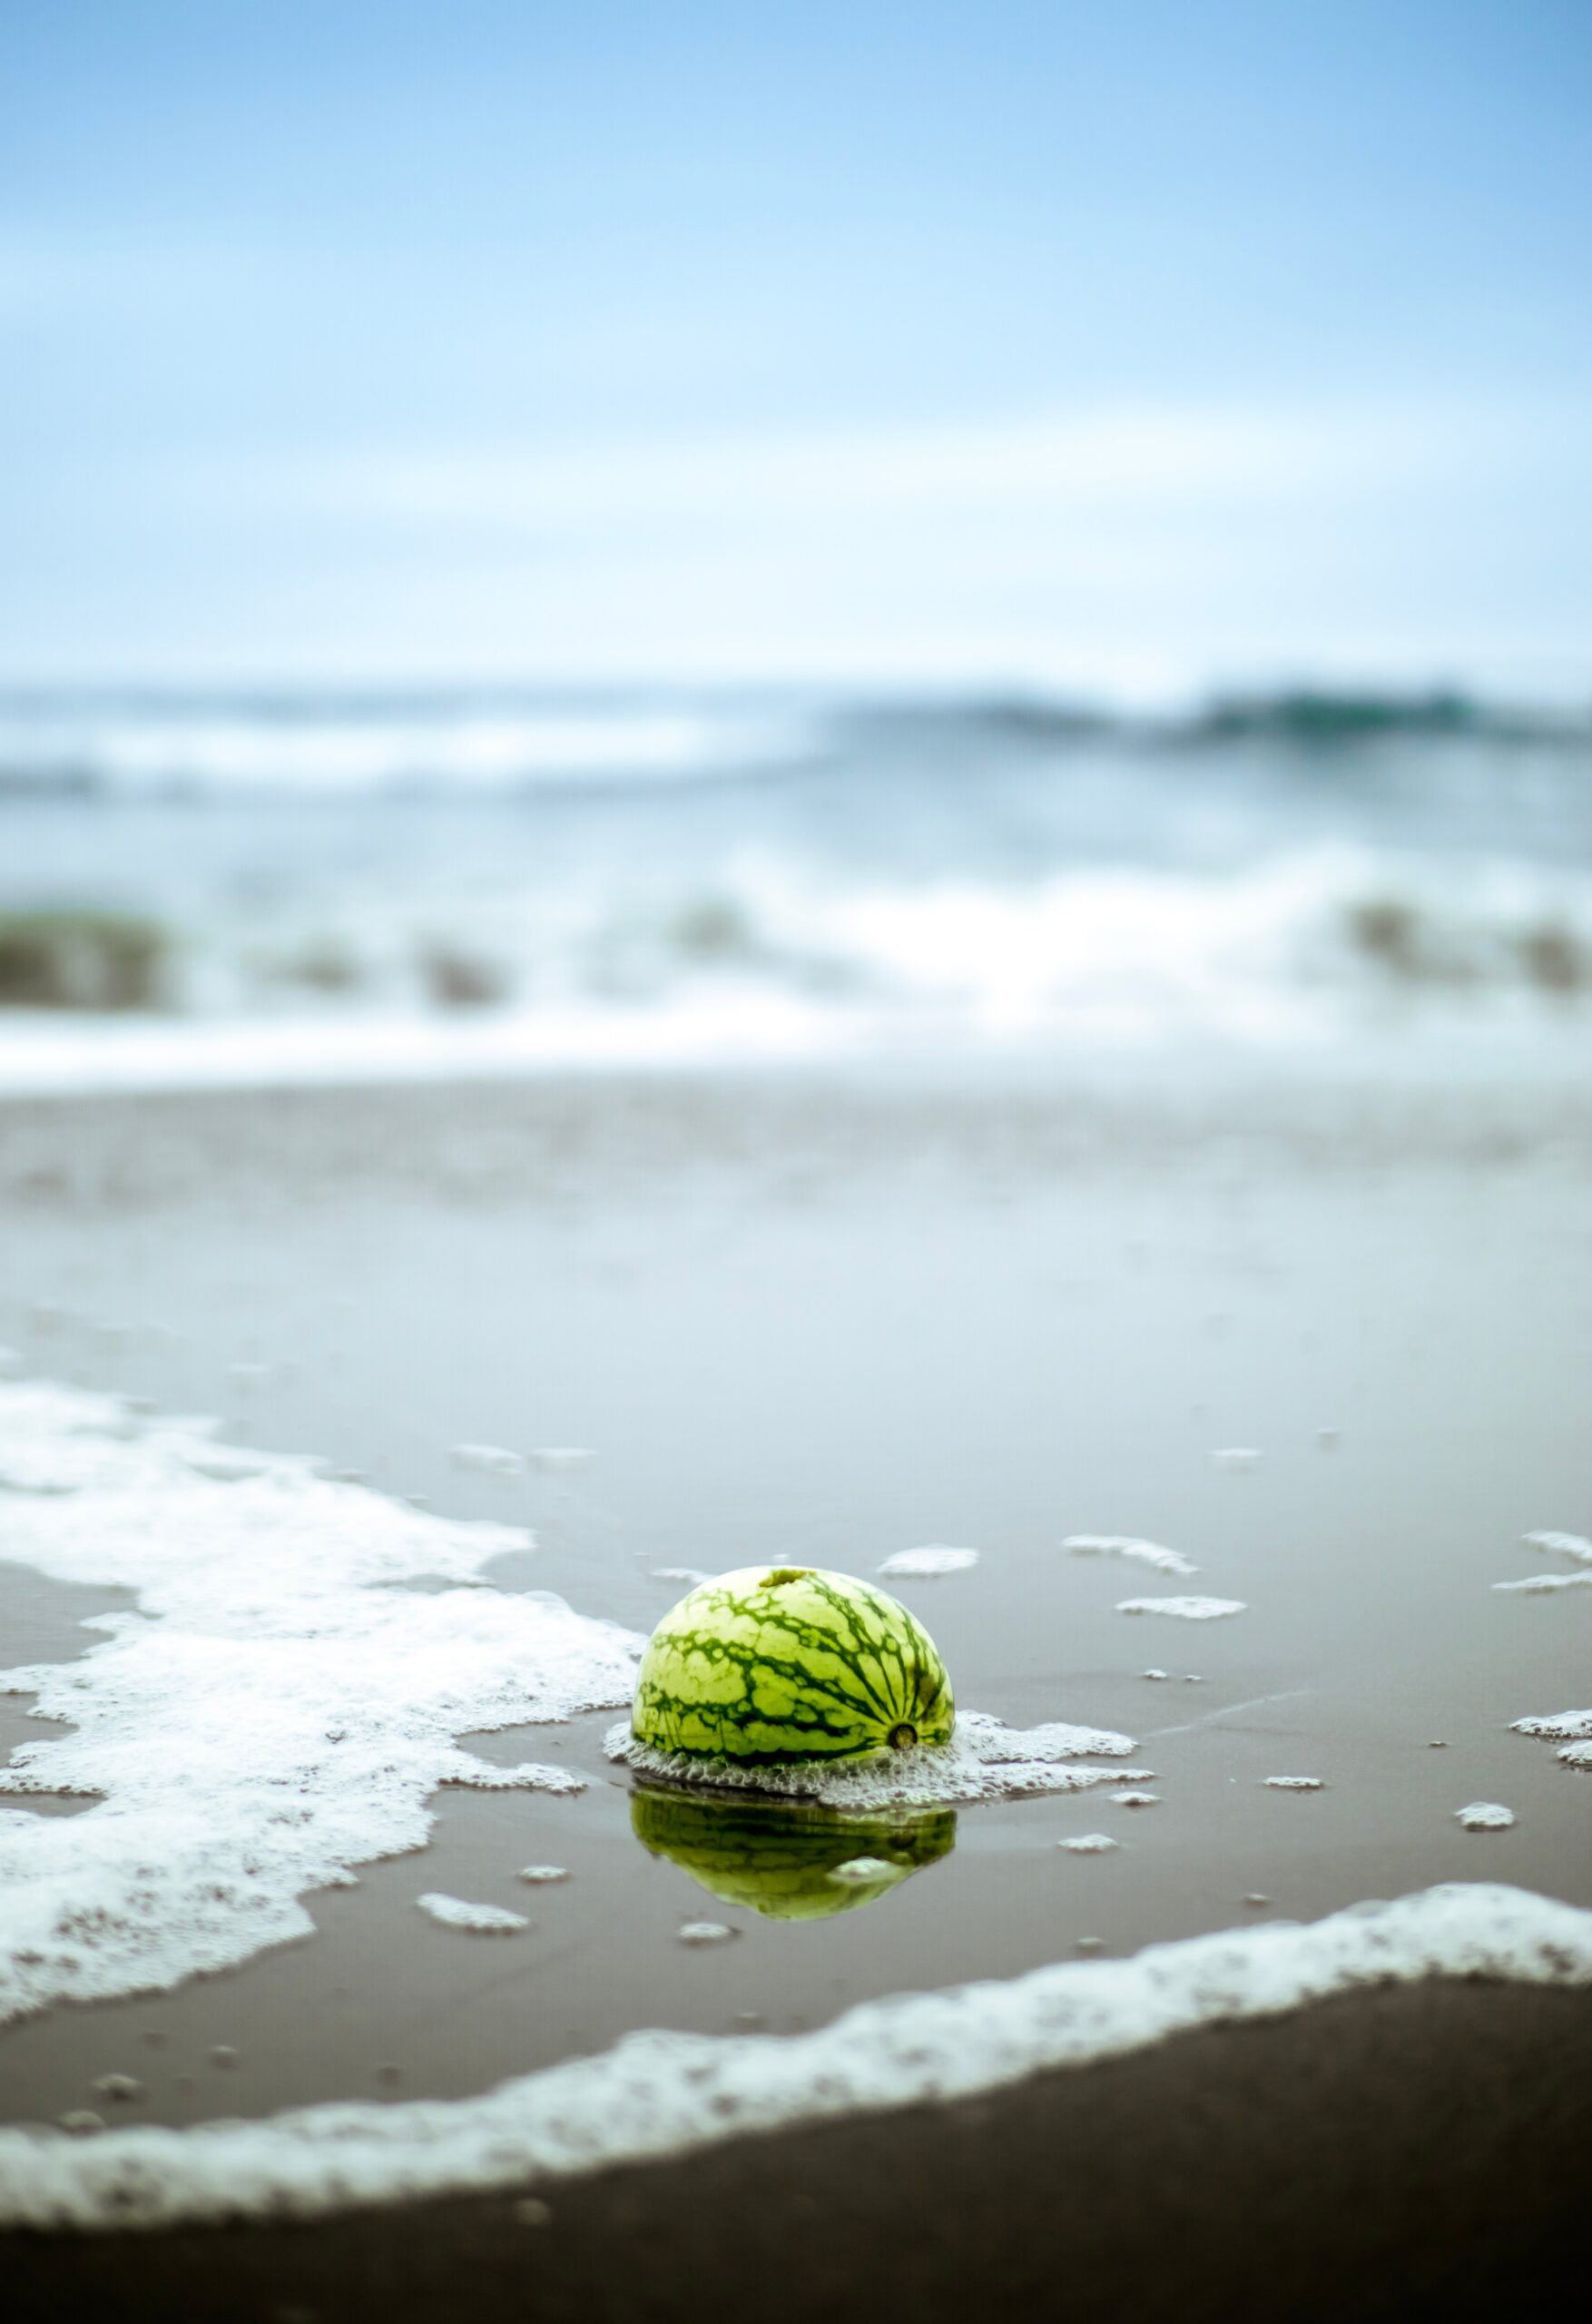 Watermelon washing ashore on ocean beach by william bout on Unsplash